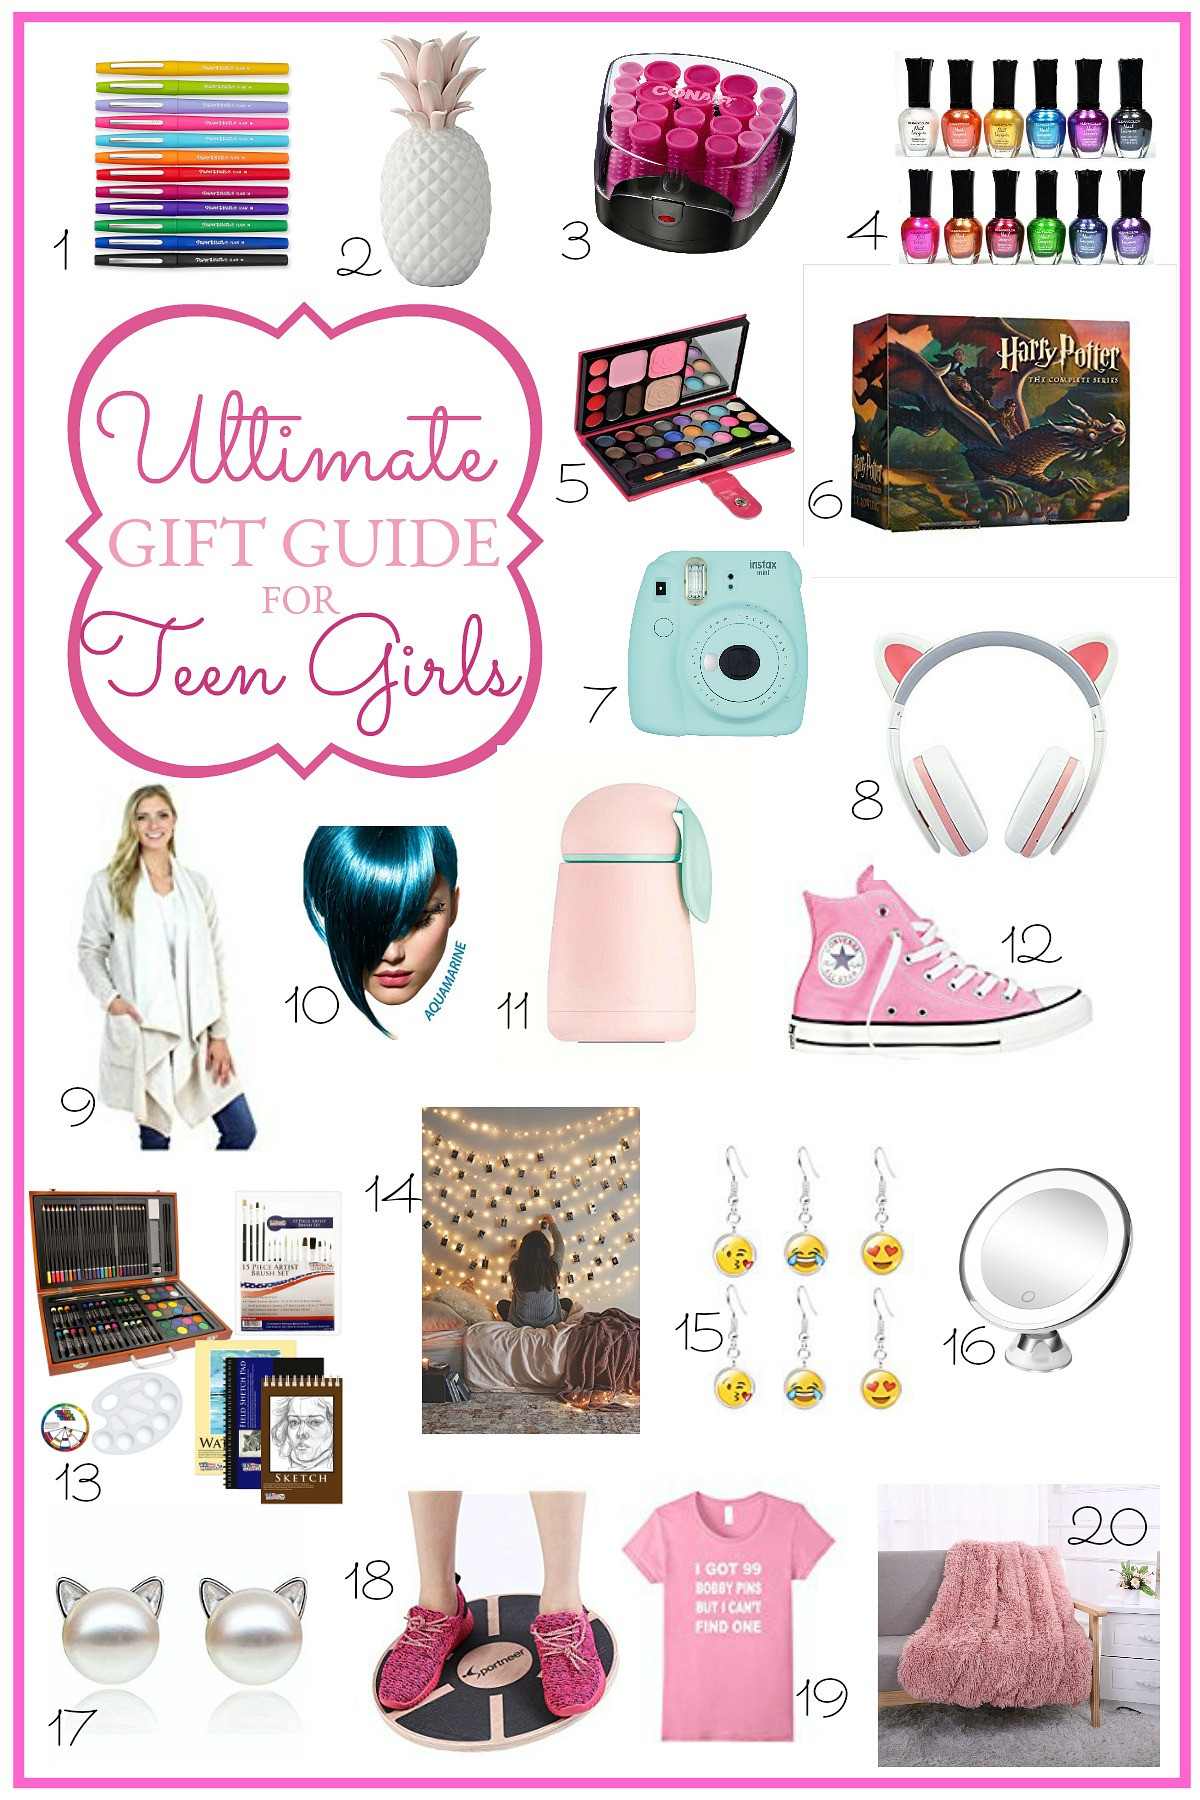 Birthday Gift Ideas For 14 Yr Old Girl  Ultimate Holiday Gift Guide for Teen Girls